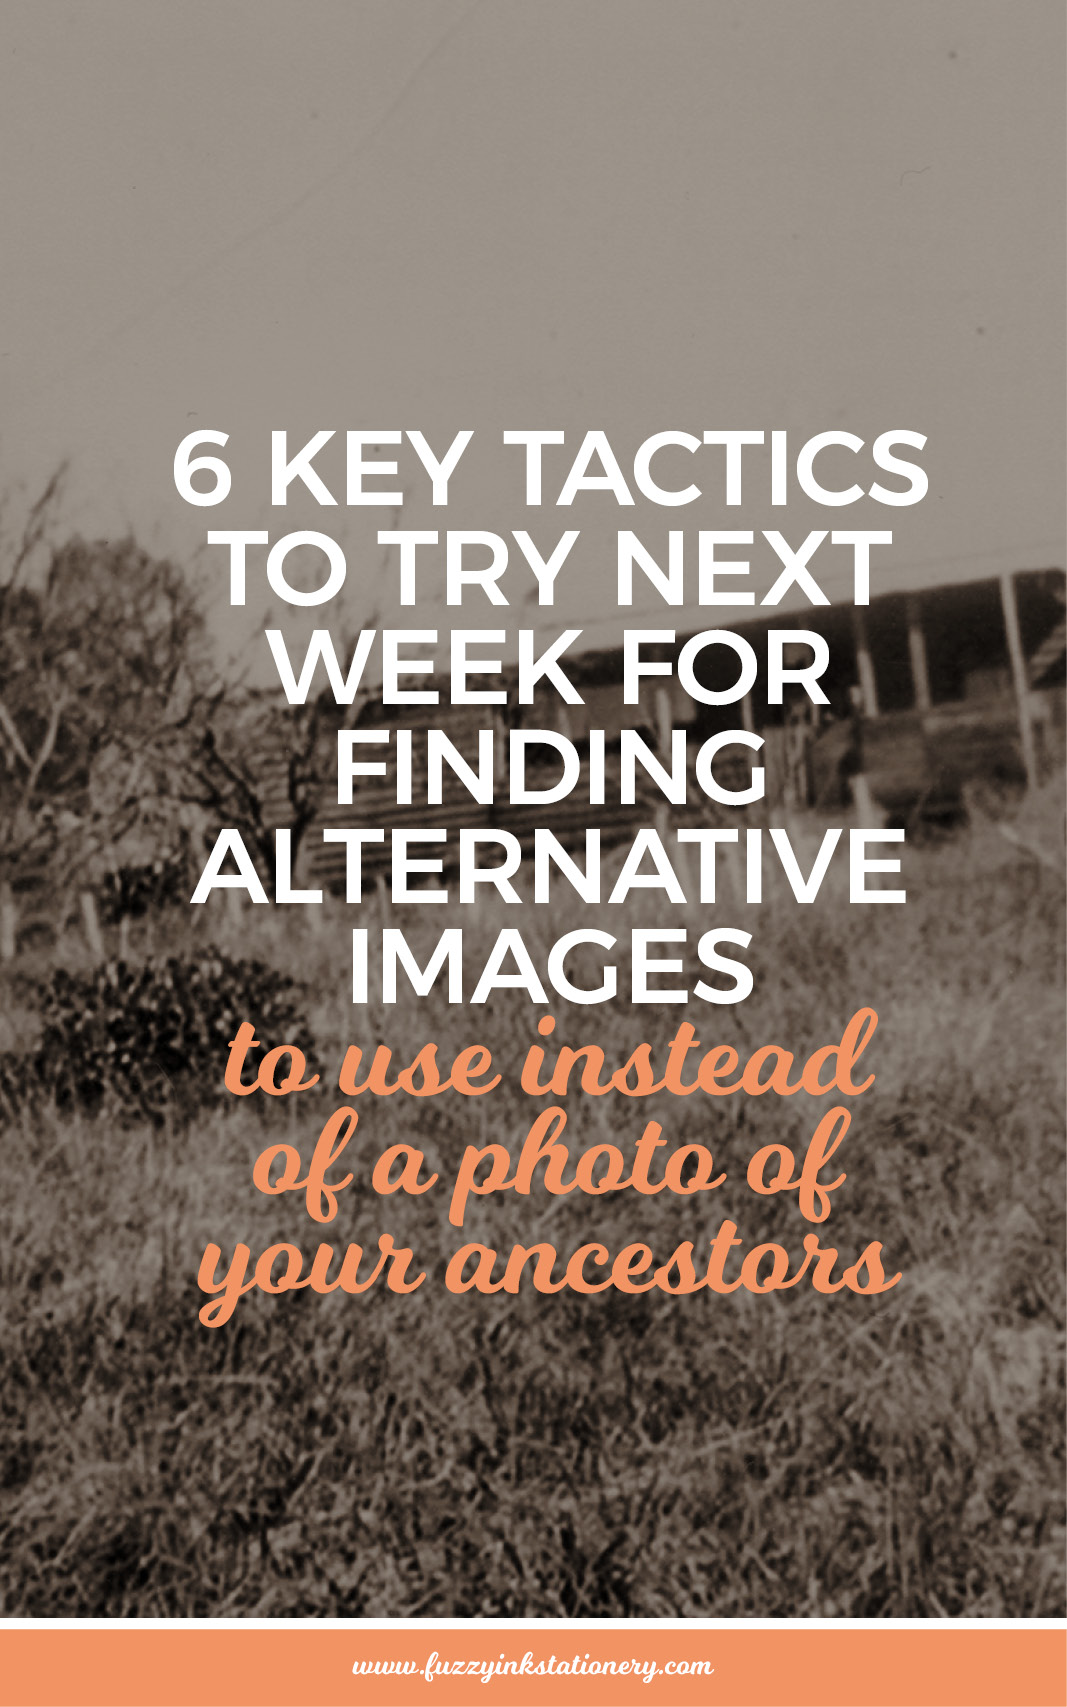 6 key tactics to try next week for finding alternative images to use instead of a photo of your ancestors